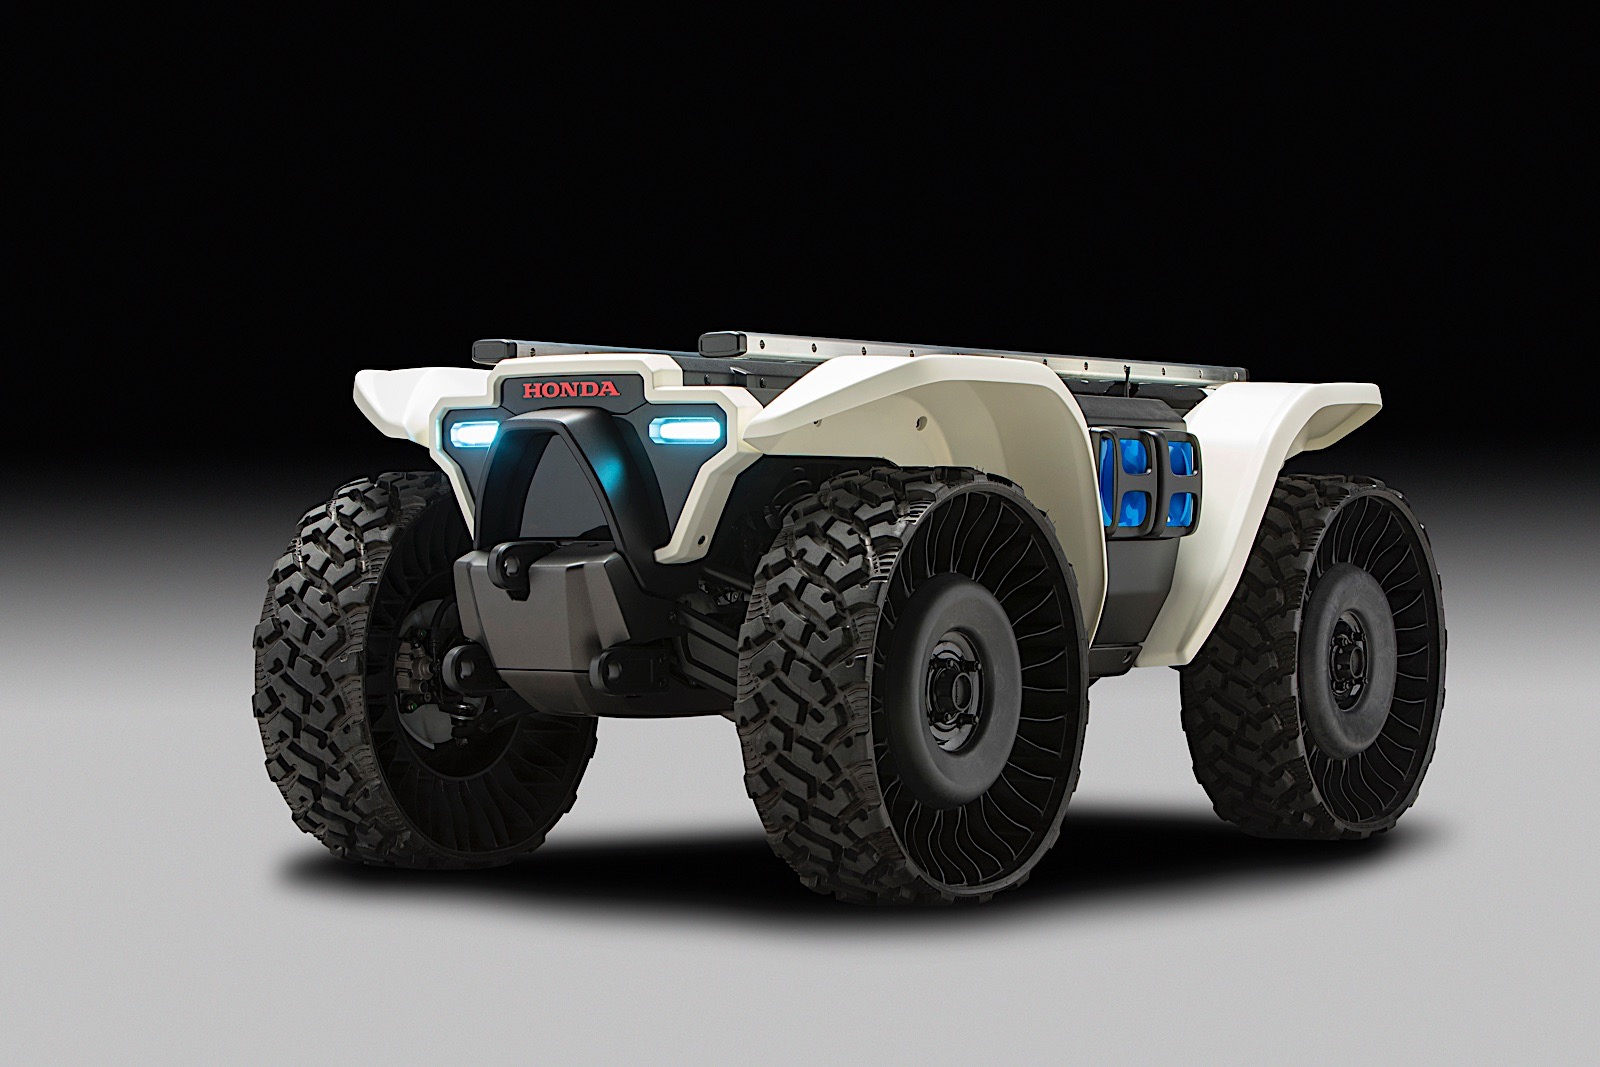 Honda's 3E-D18 is an autonomous off-road robotic device with AI designed to support people in a broad range of work activities.